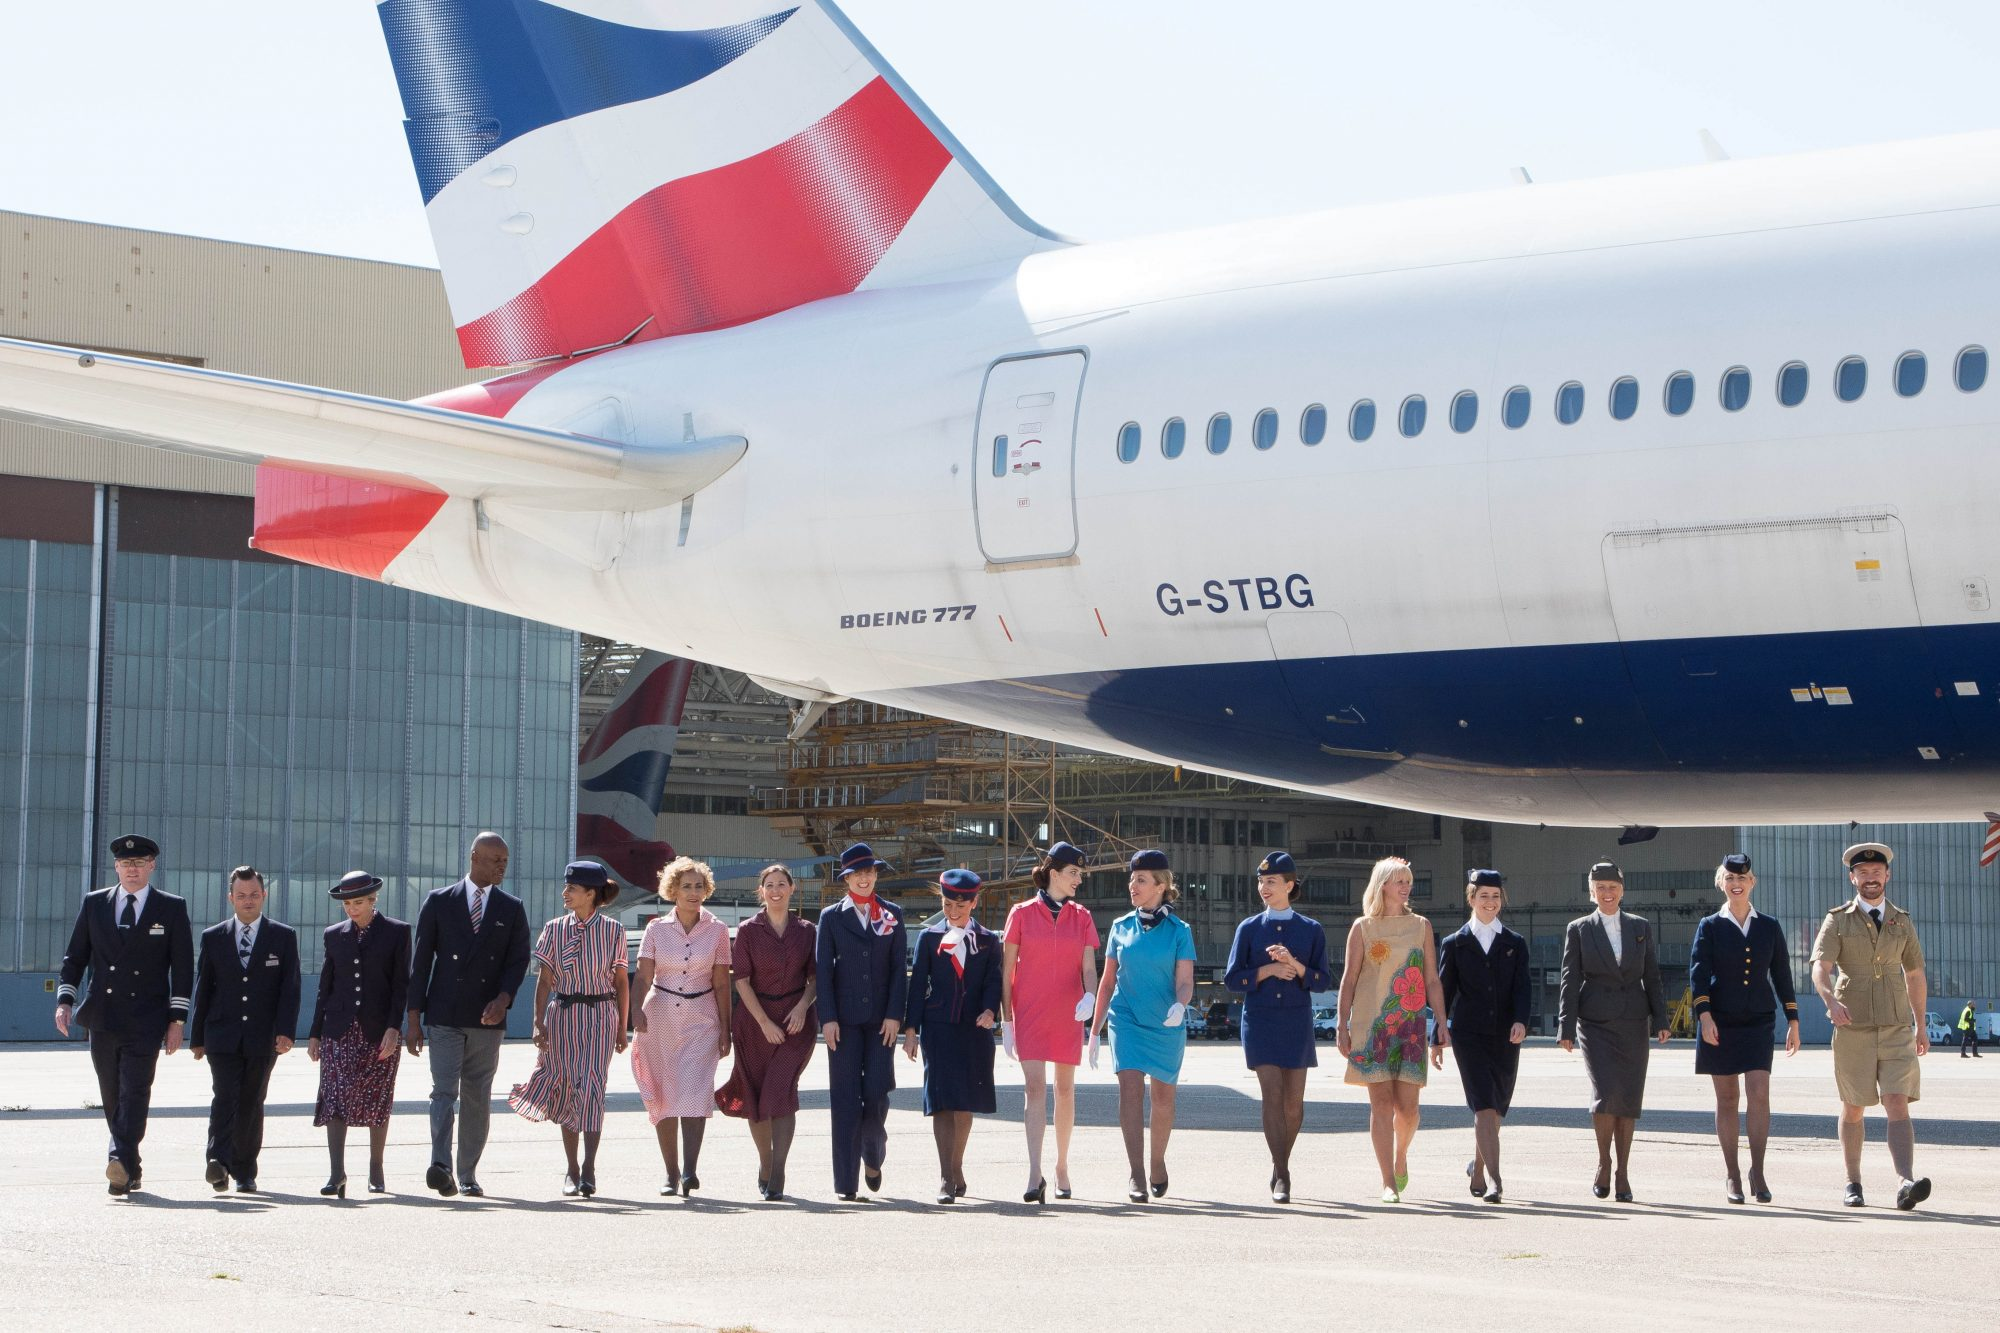 British Designer Ozwald Boateng Is Designing New Uniforms for British Airways